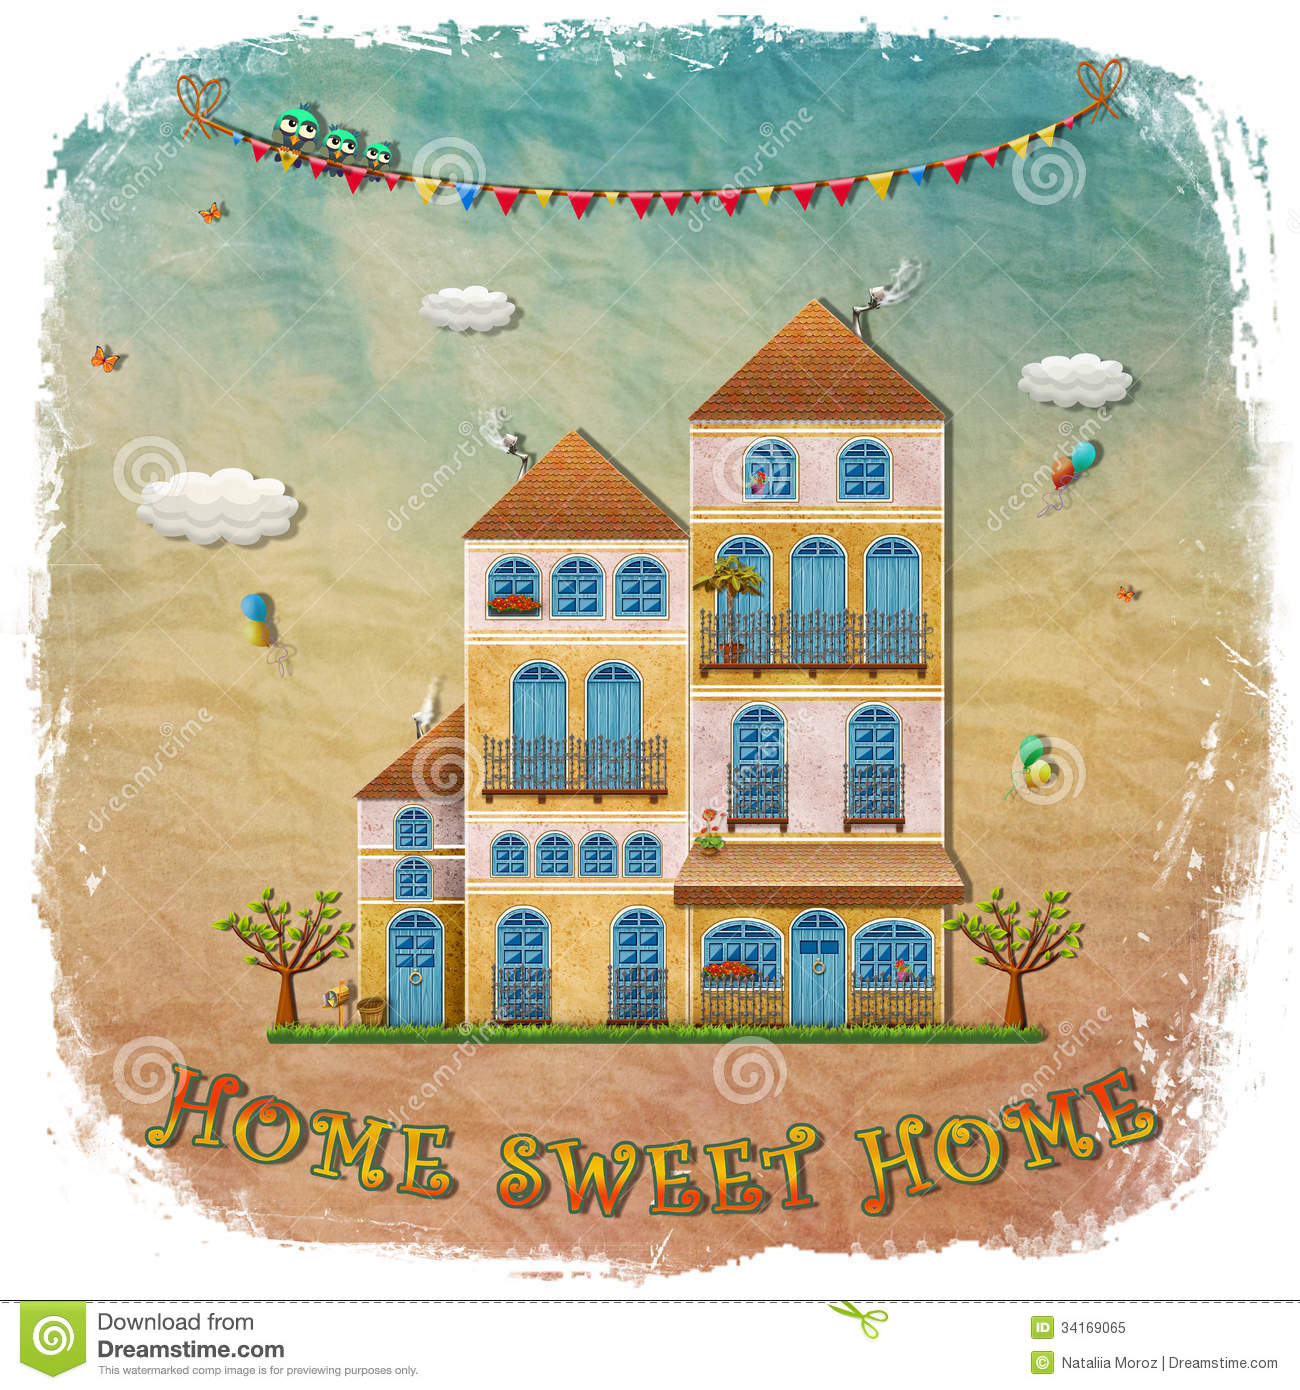 Home Sweet Home Vintage exceptional cottage style home plans #8: home-sweet-home-cartoon